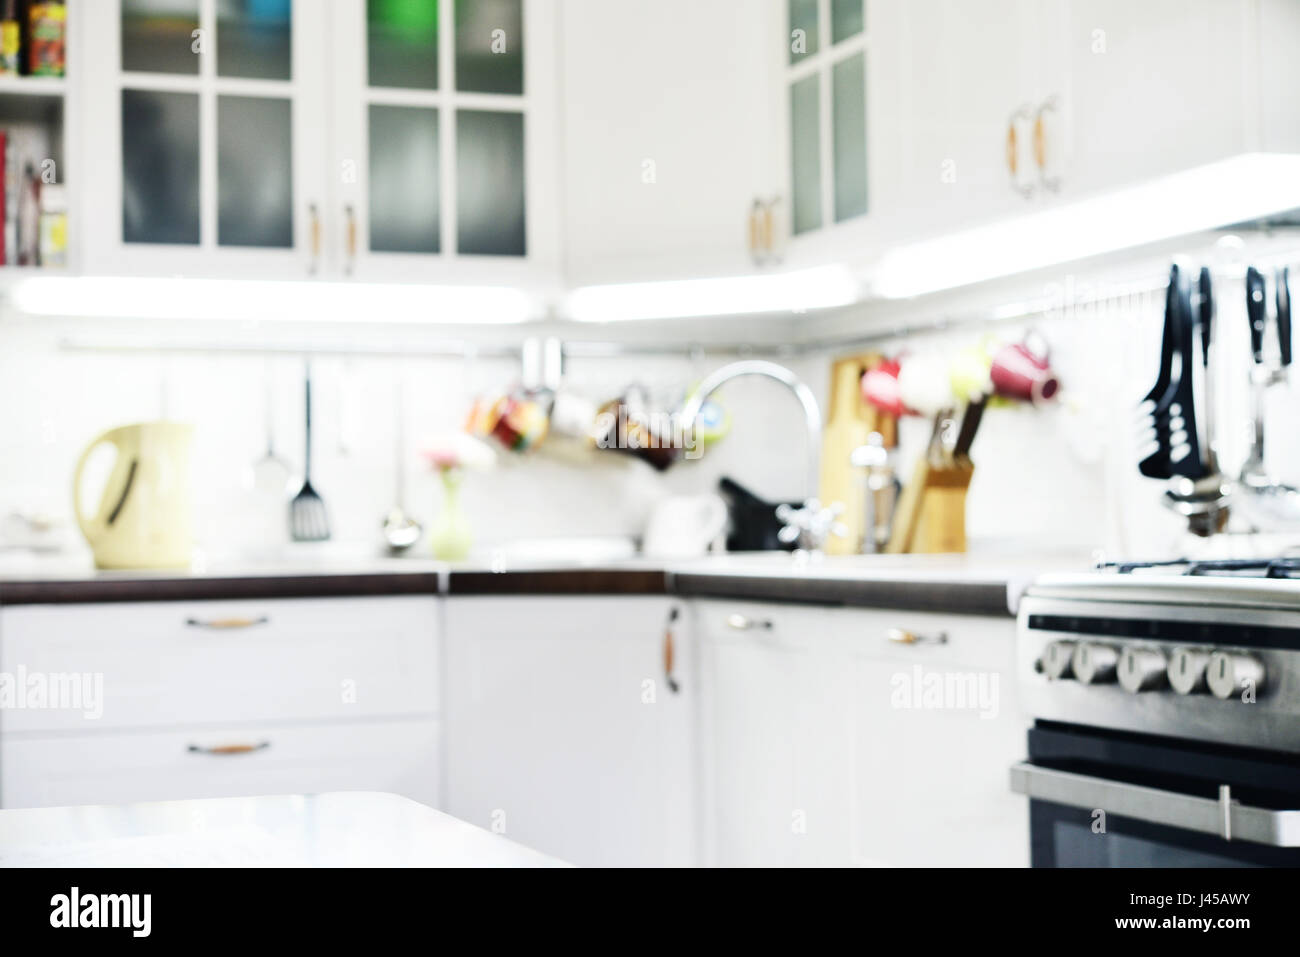 Blurred background. Modern kitchen with railings system  and kitchen utensils. - Stock Image